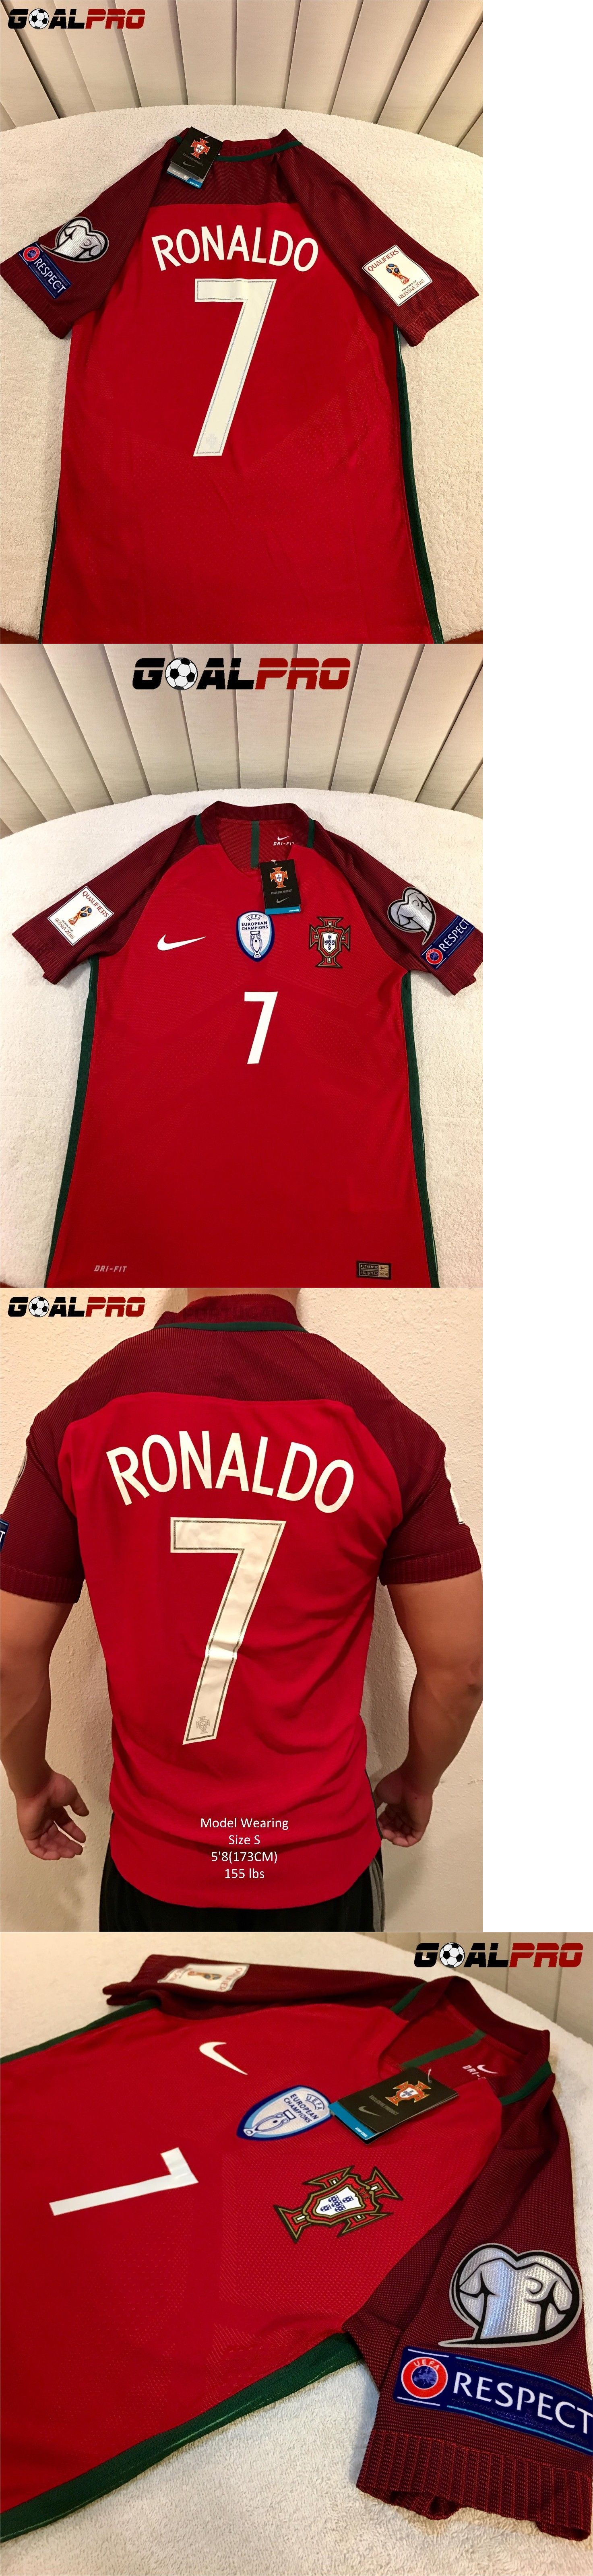 altidore in 2013 soccer national teams 2891 2016 17 ronaldo portugal home soccer jersey 2018 russia world